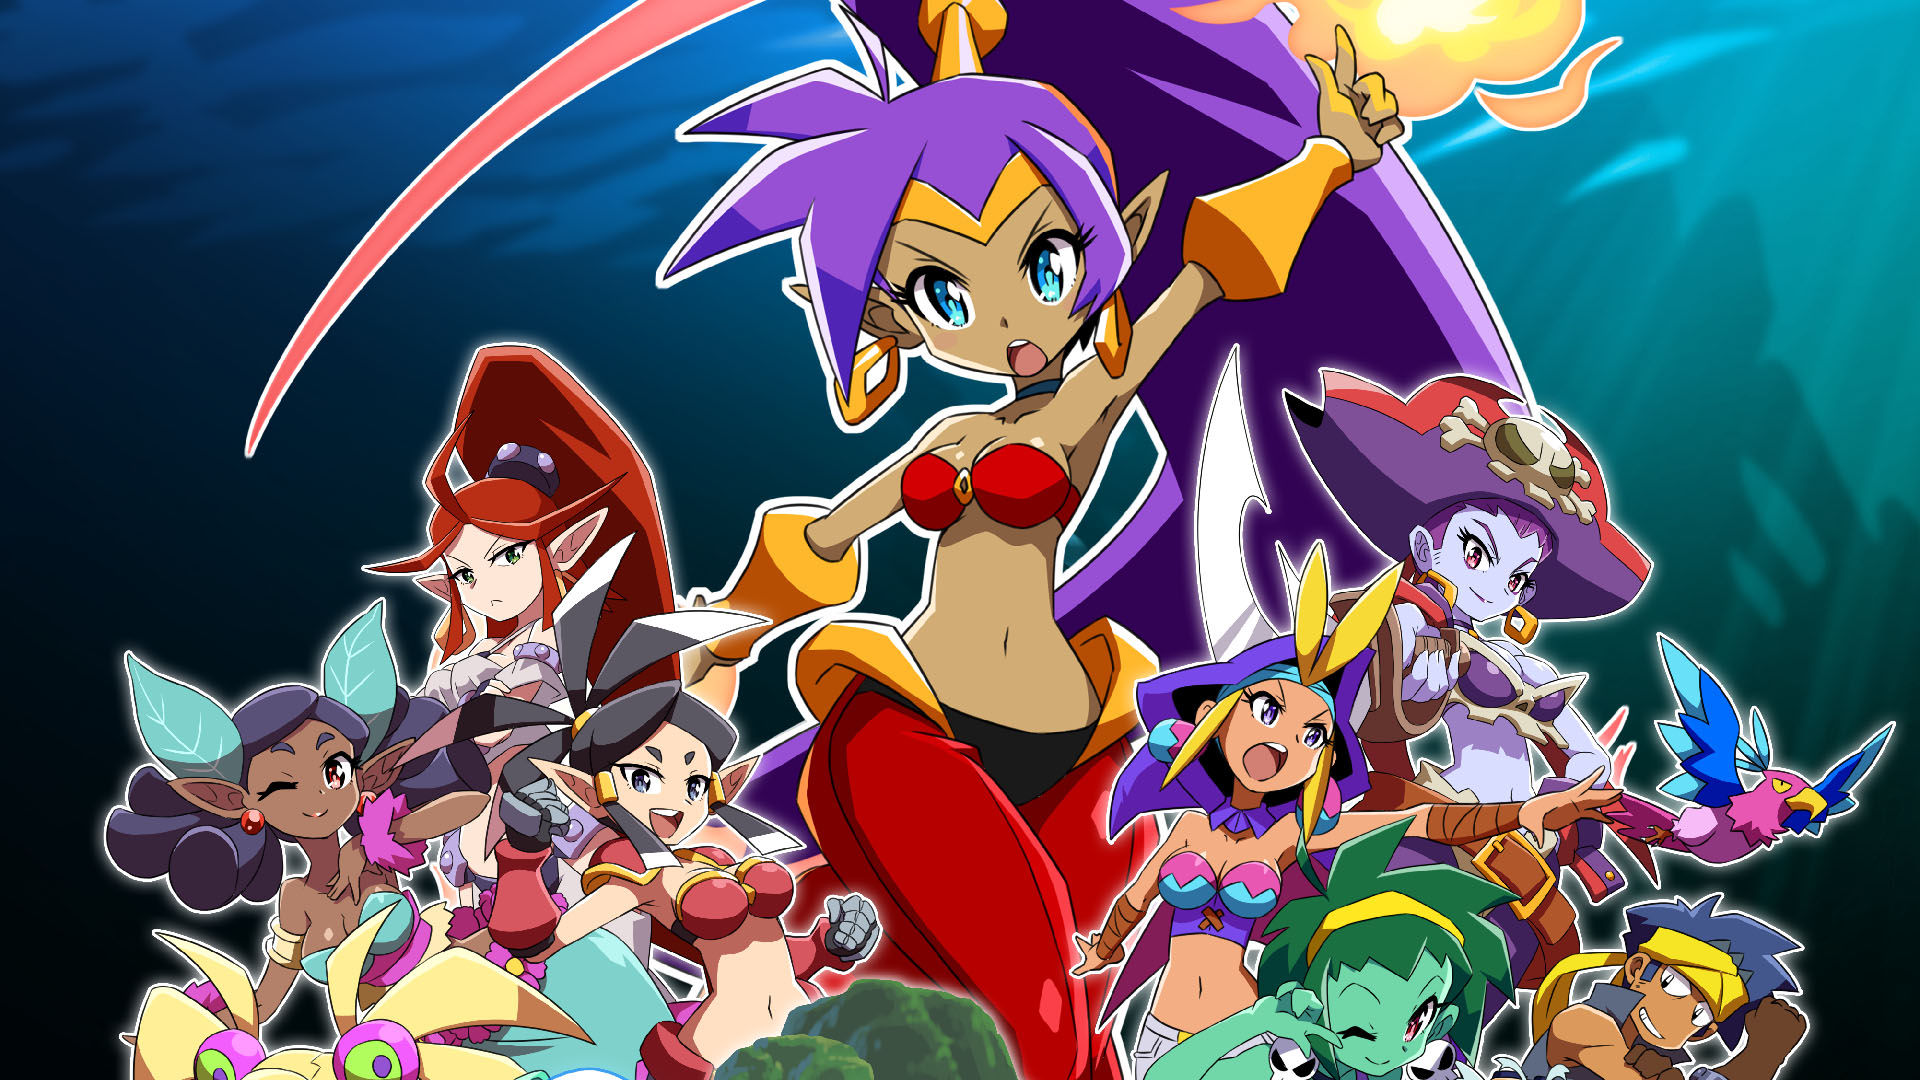 Shantae and the Seven Sirens isn't a 'mobile game,' yet here it is on Apple Arcade